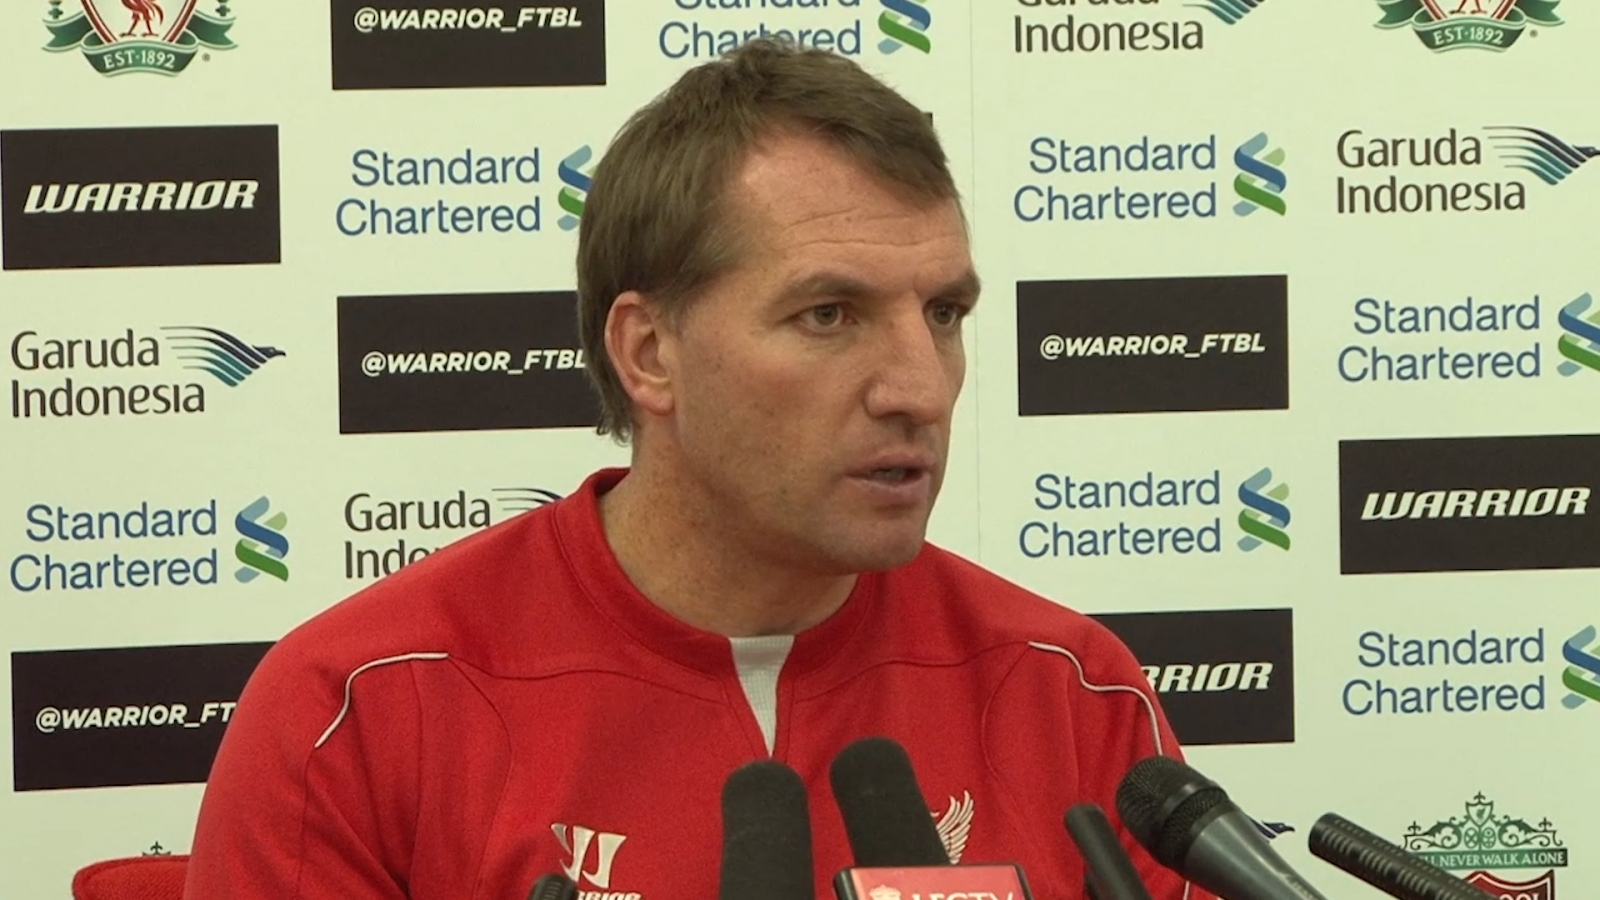 Brendan Rodgers plays down talk of Liverpool transfer spending in January